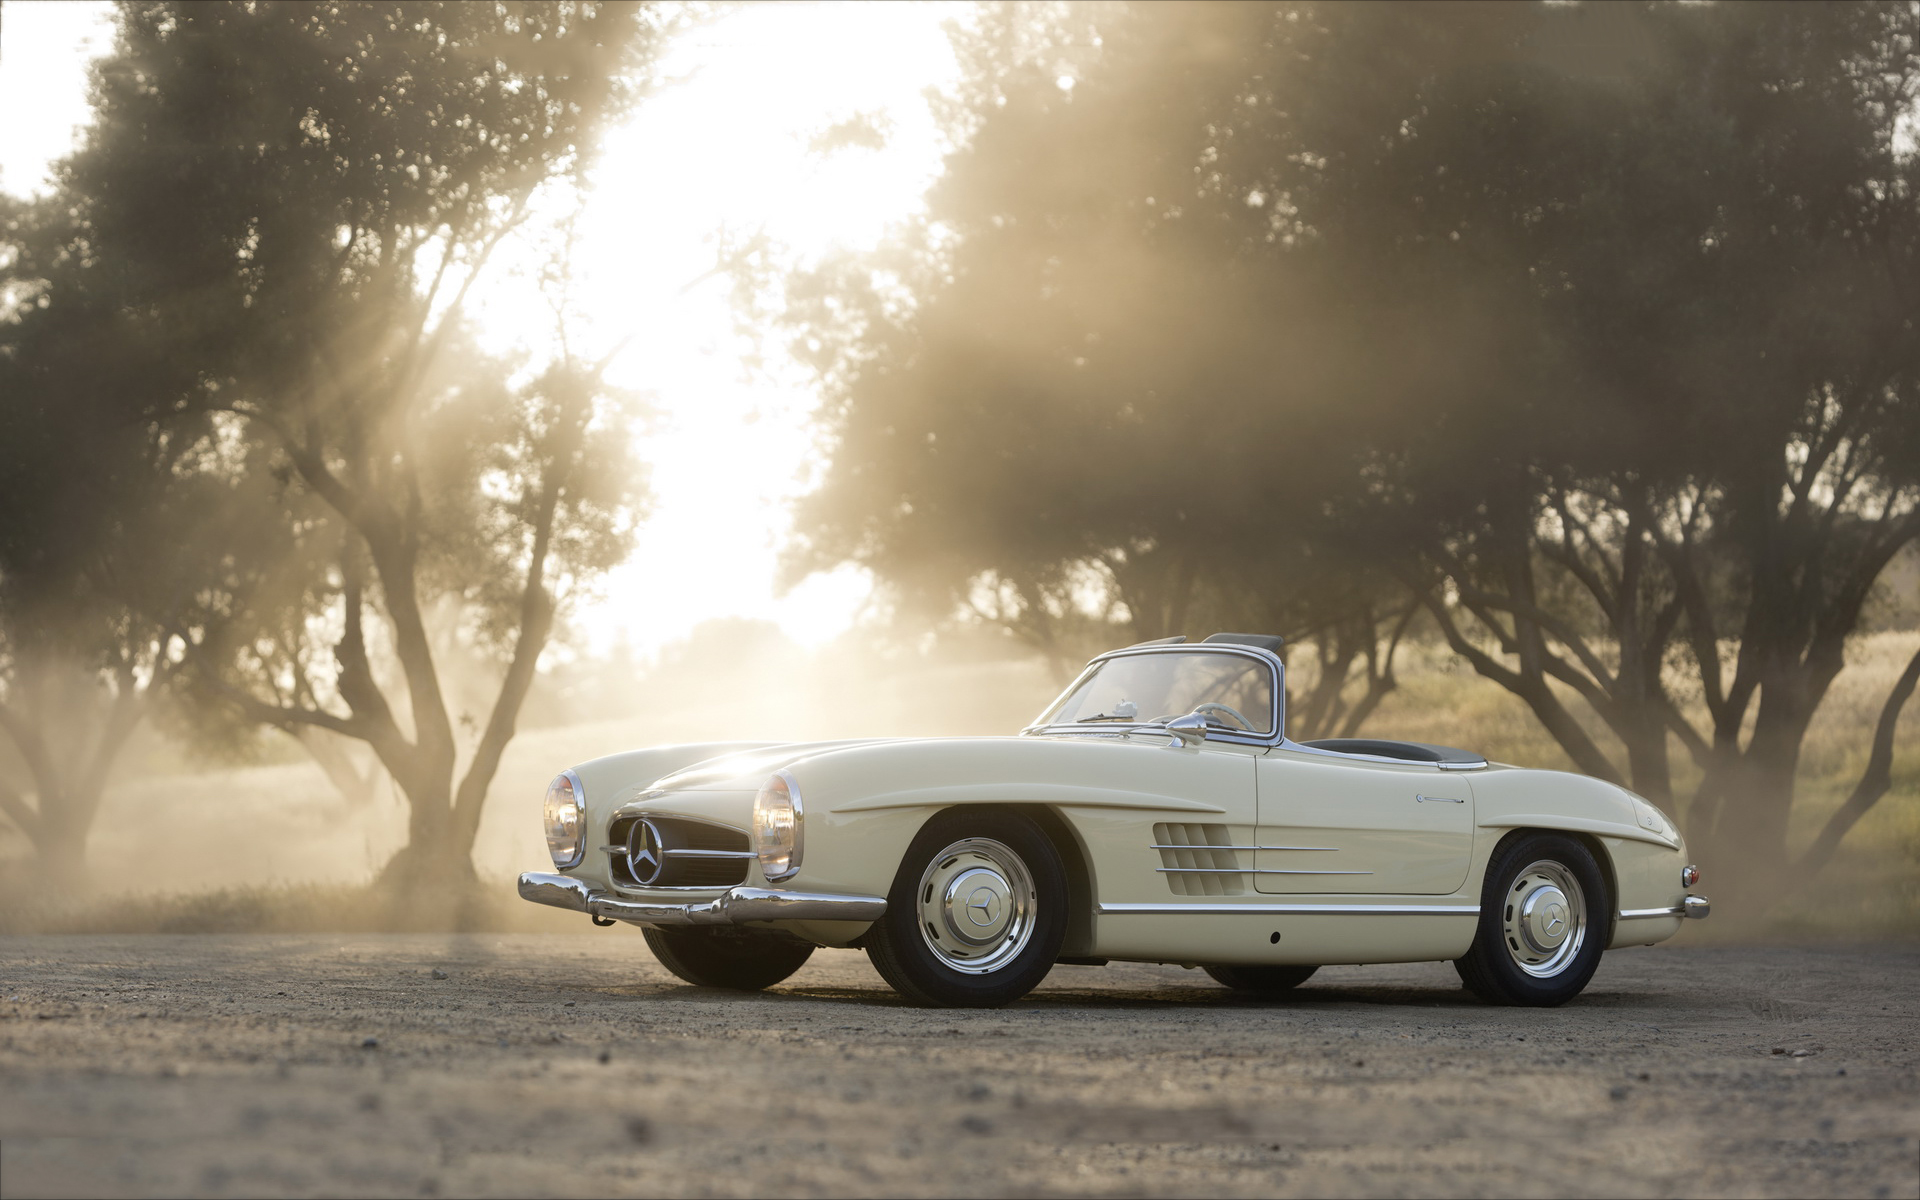 Classic Cars Hd Wallpapers 4k: Merecedes 300SL Classic, HD Cars, 4k Wallpapers, Images